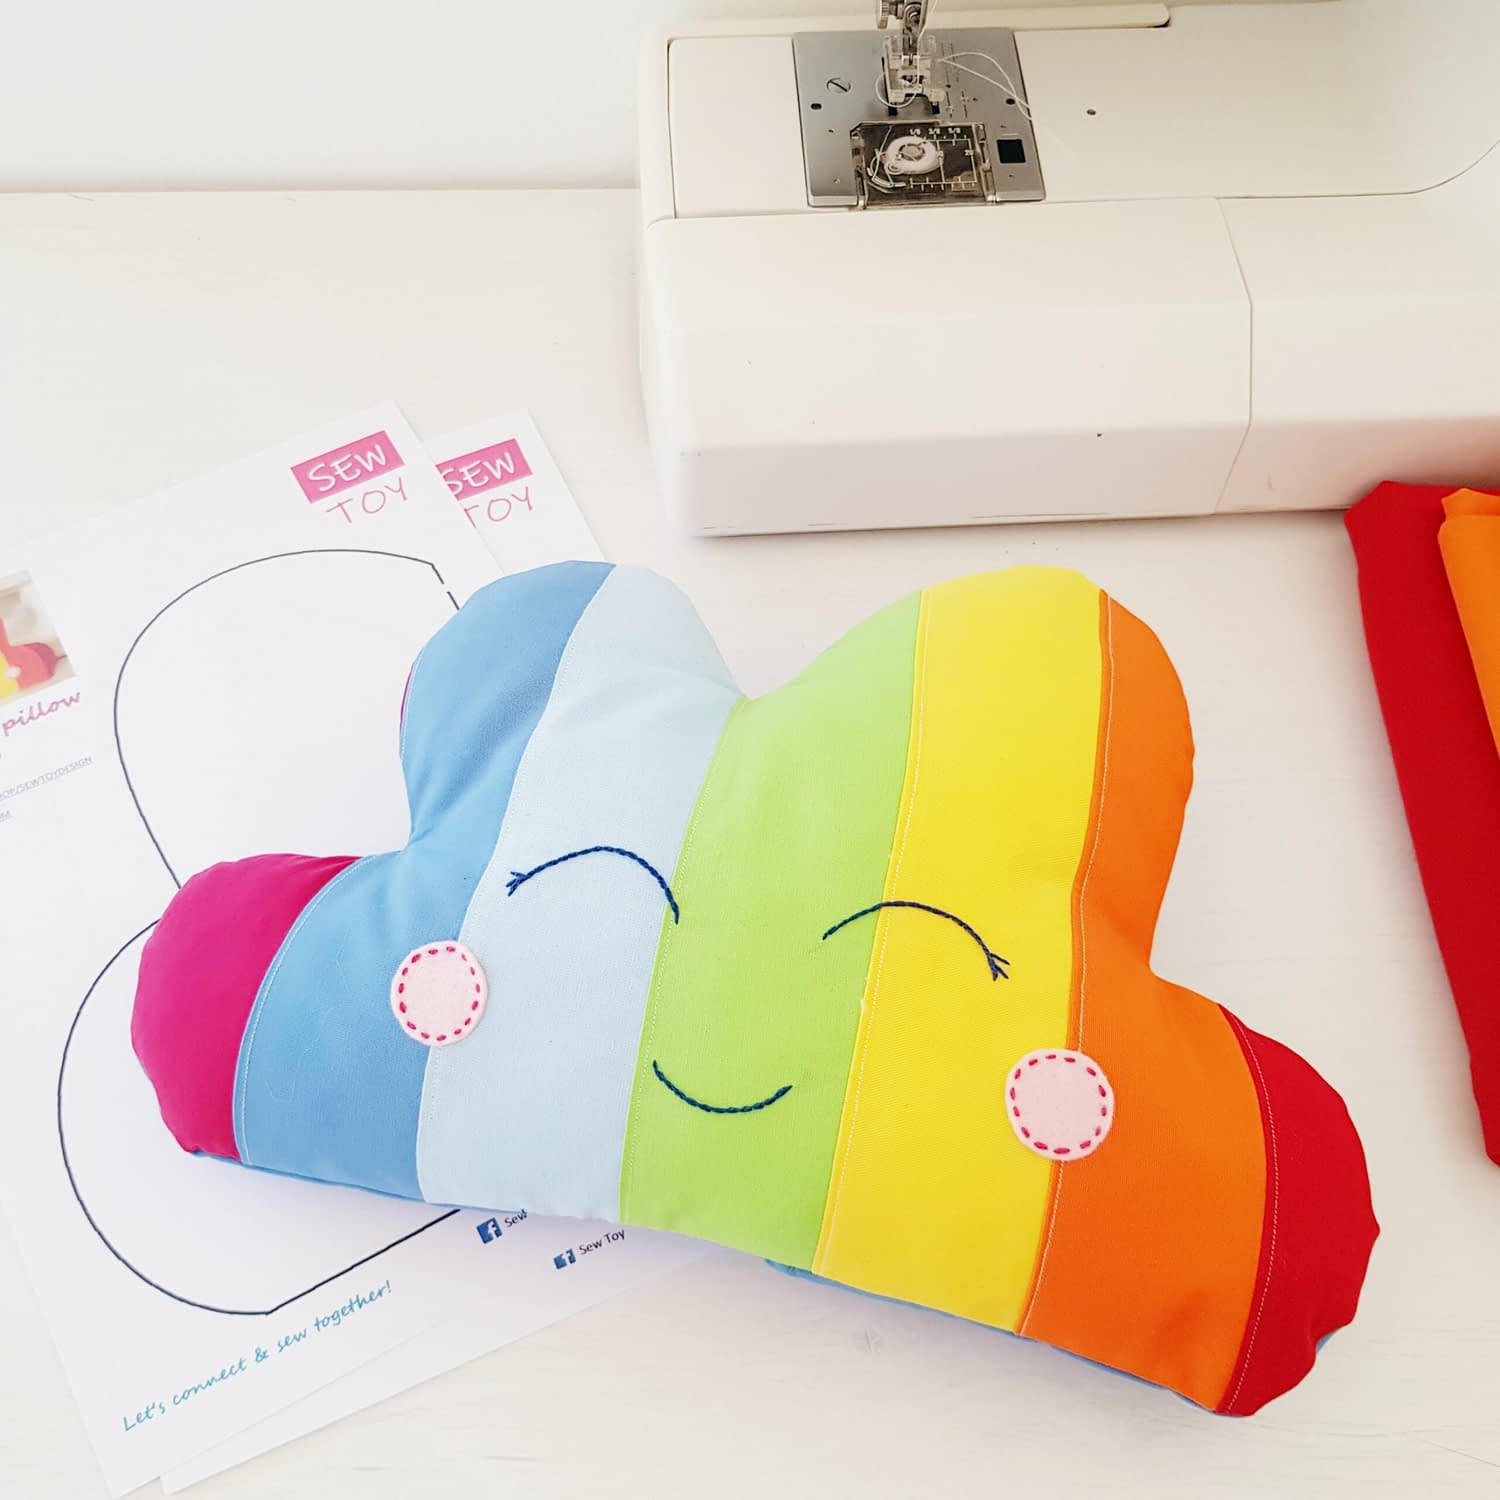 Rainbow pillow cloud sewing pattern for beginners with a smiley face